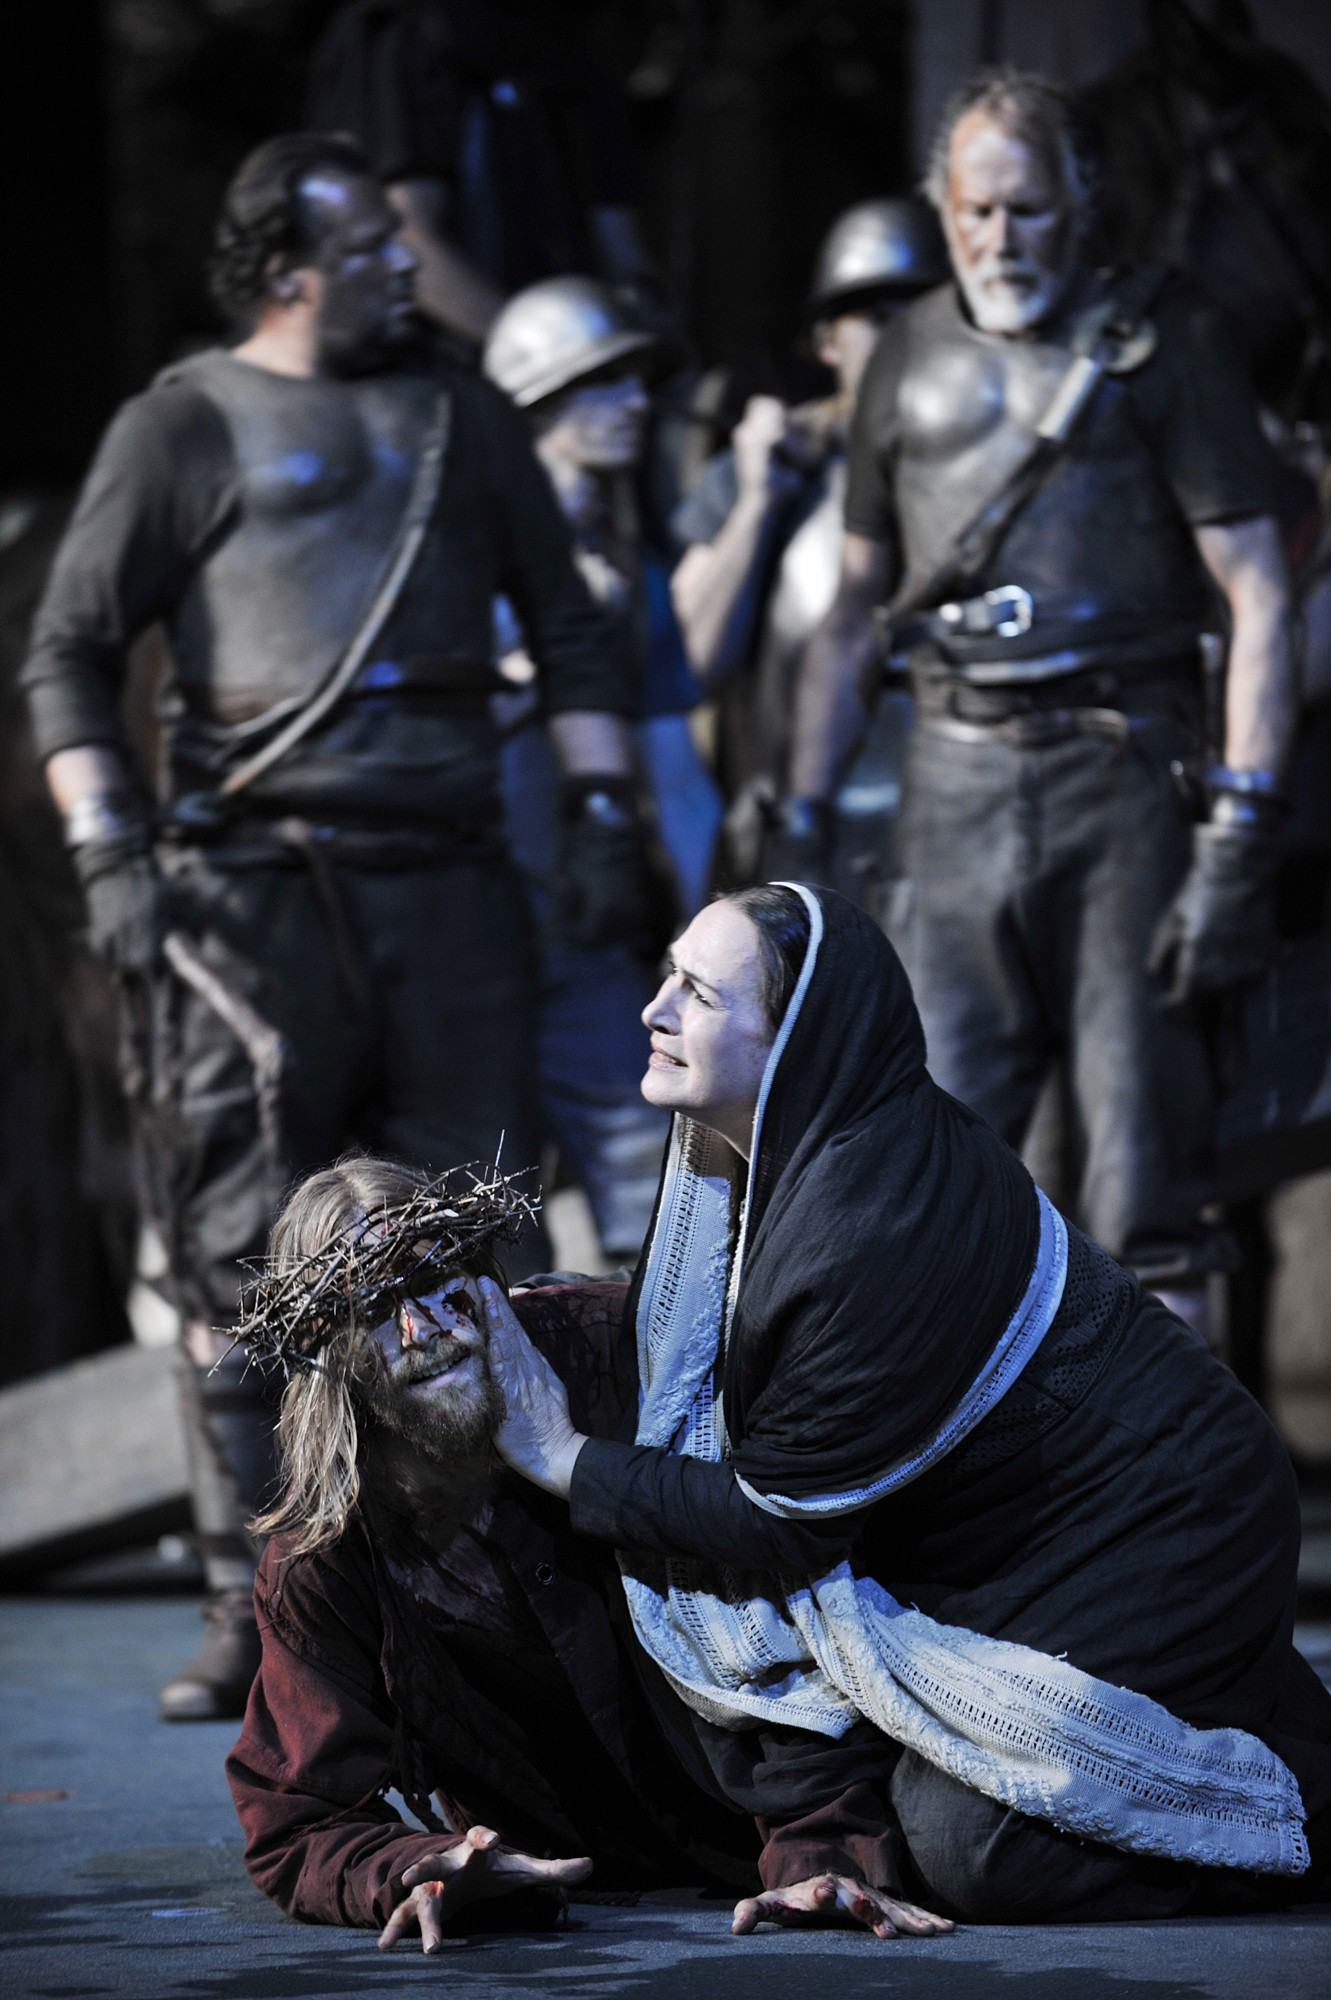 The Way of the Cross - Oberammergau Passion Play 2020 Photos: Oberammergau Passion Play 2020